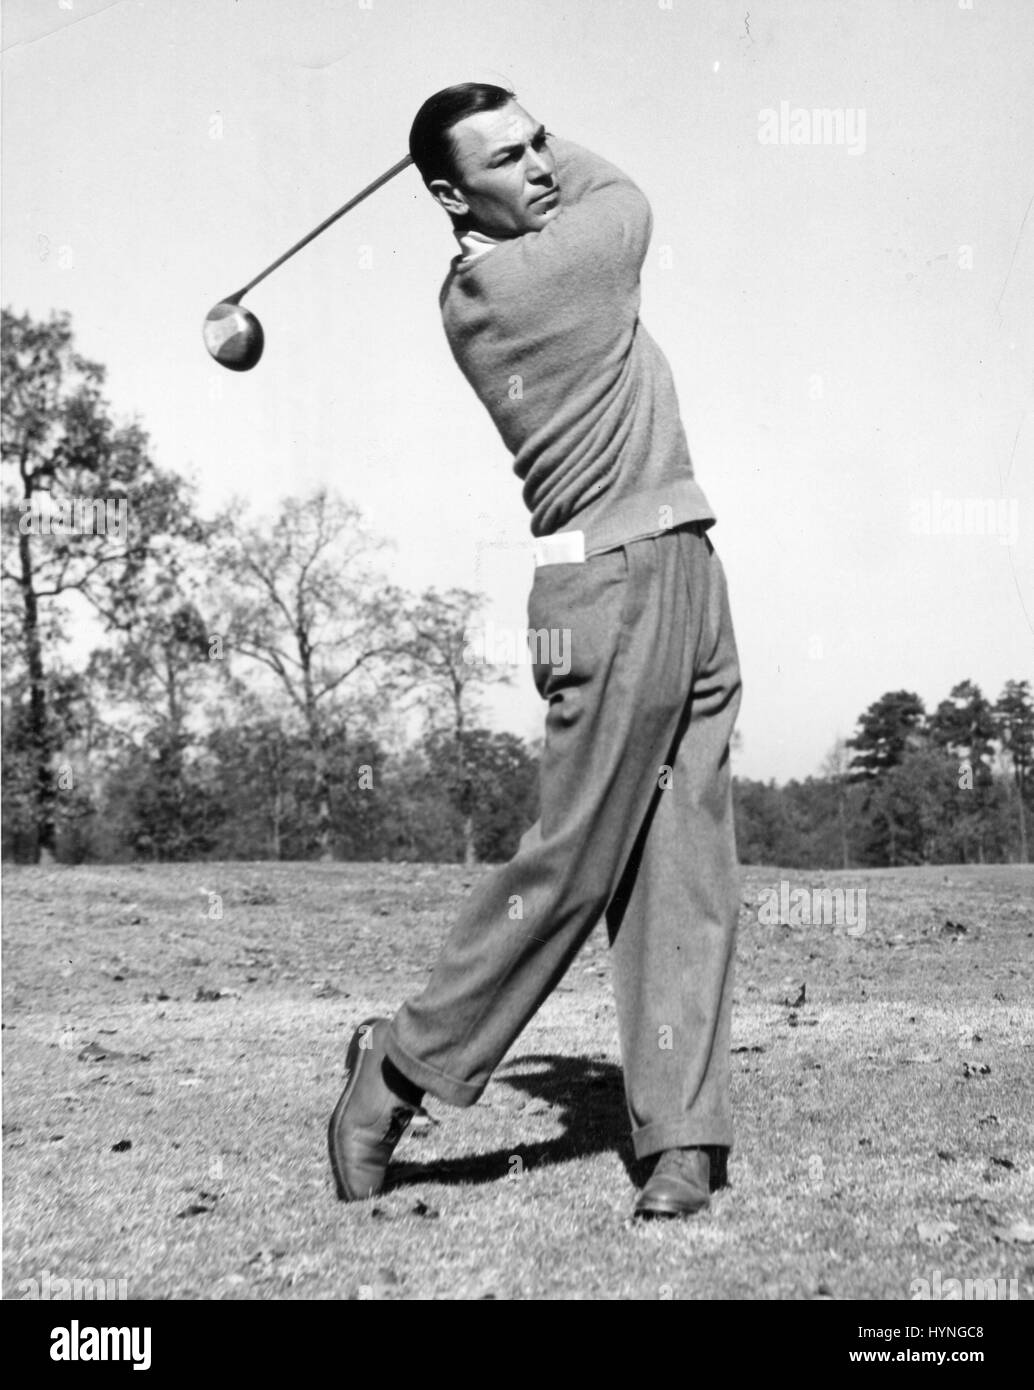 Ben Hogan Golf High Resolution Stock Photography and Images - Alamy